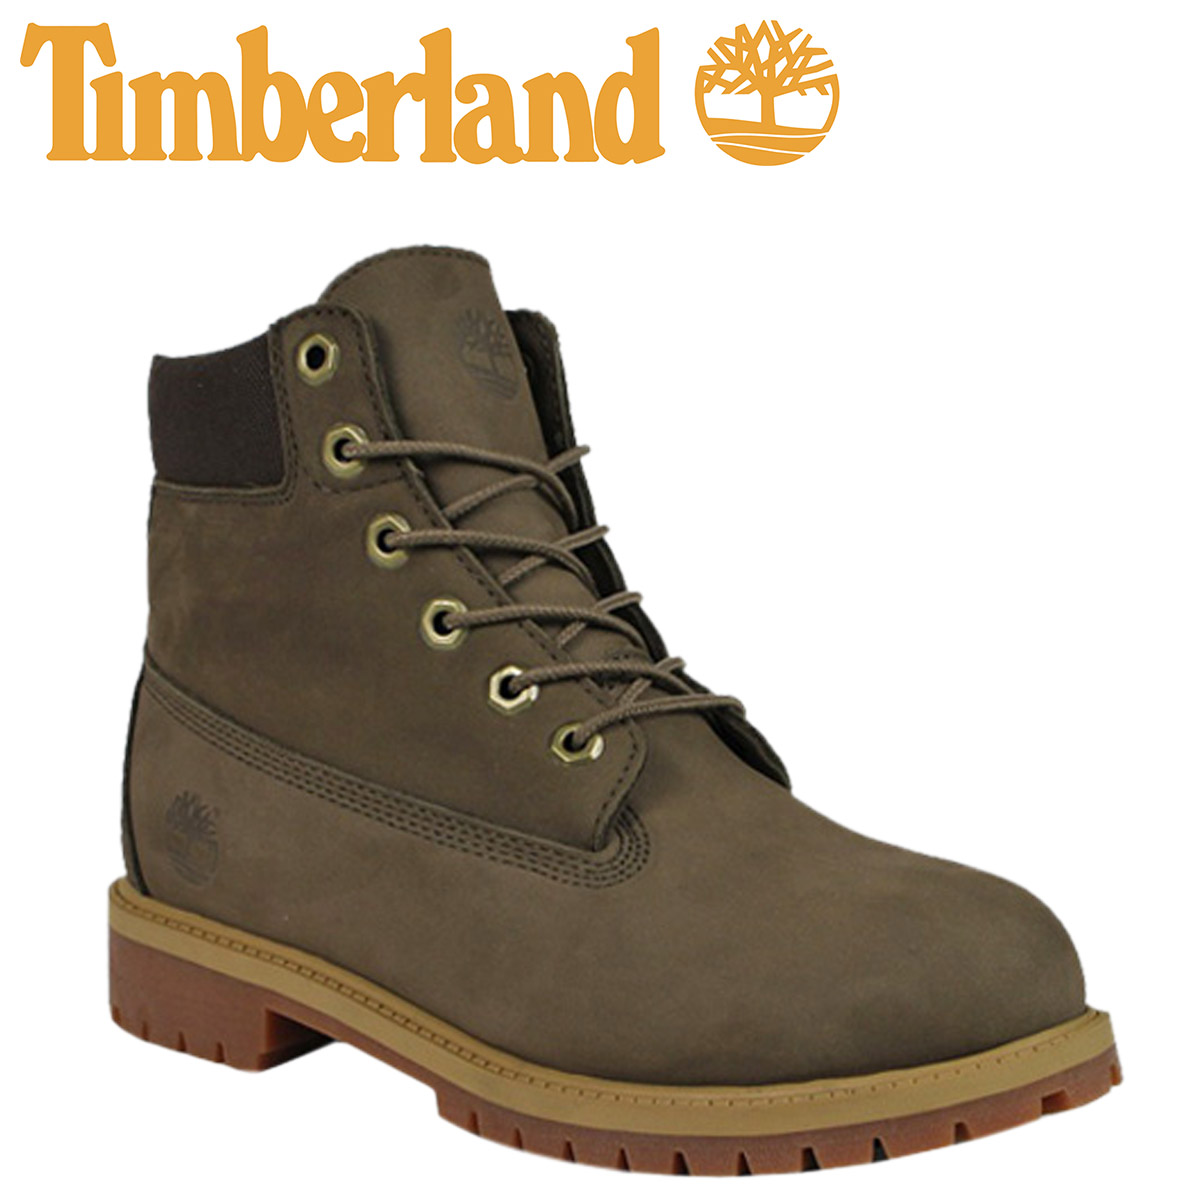 65c8a083d0d40  SOLD OUT  Timberland Timberland 6 inch premium boots  canteen Brown  3298  R 6inch Premium Boot junior kids child women s CANTEEN GS